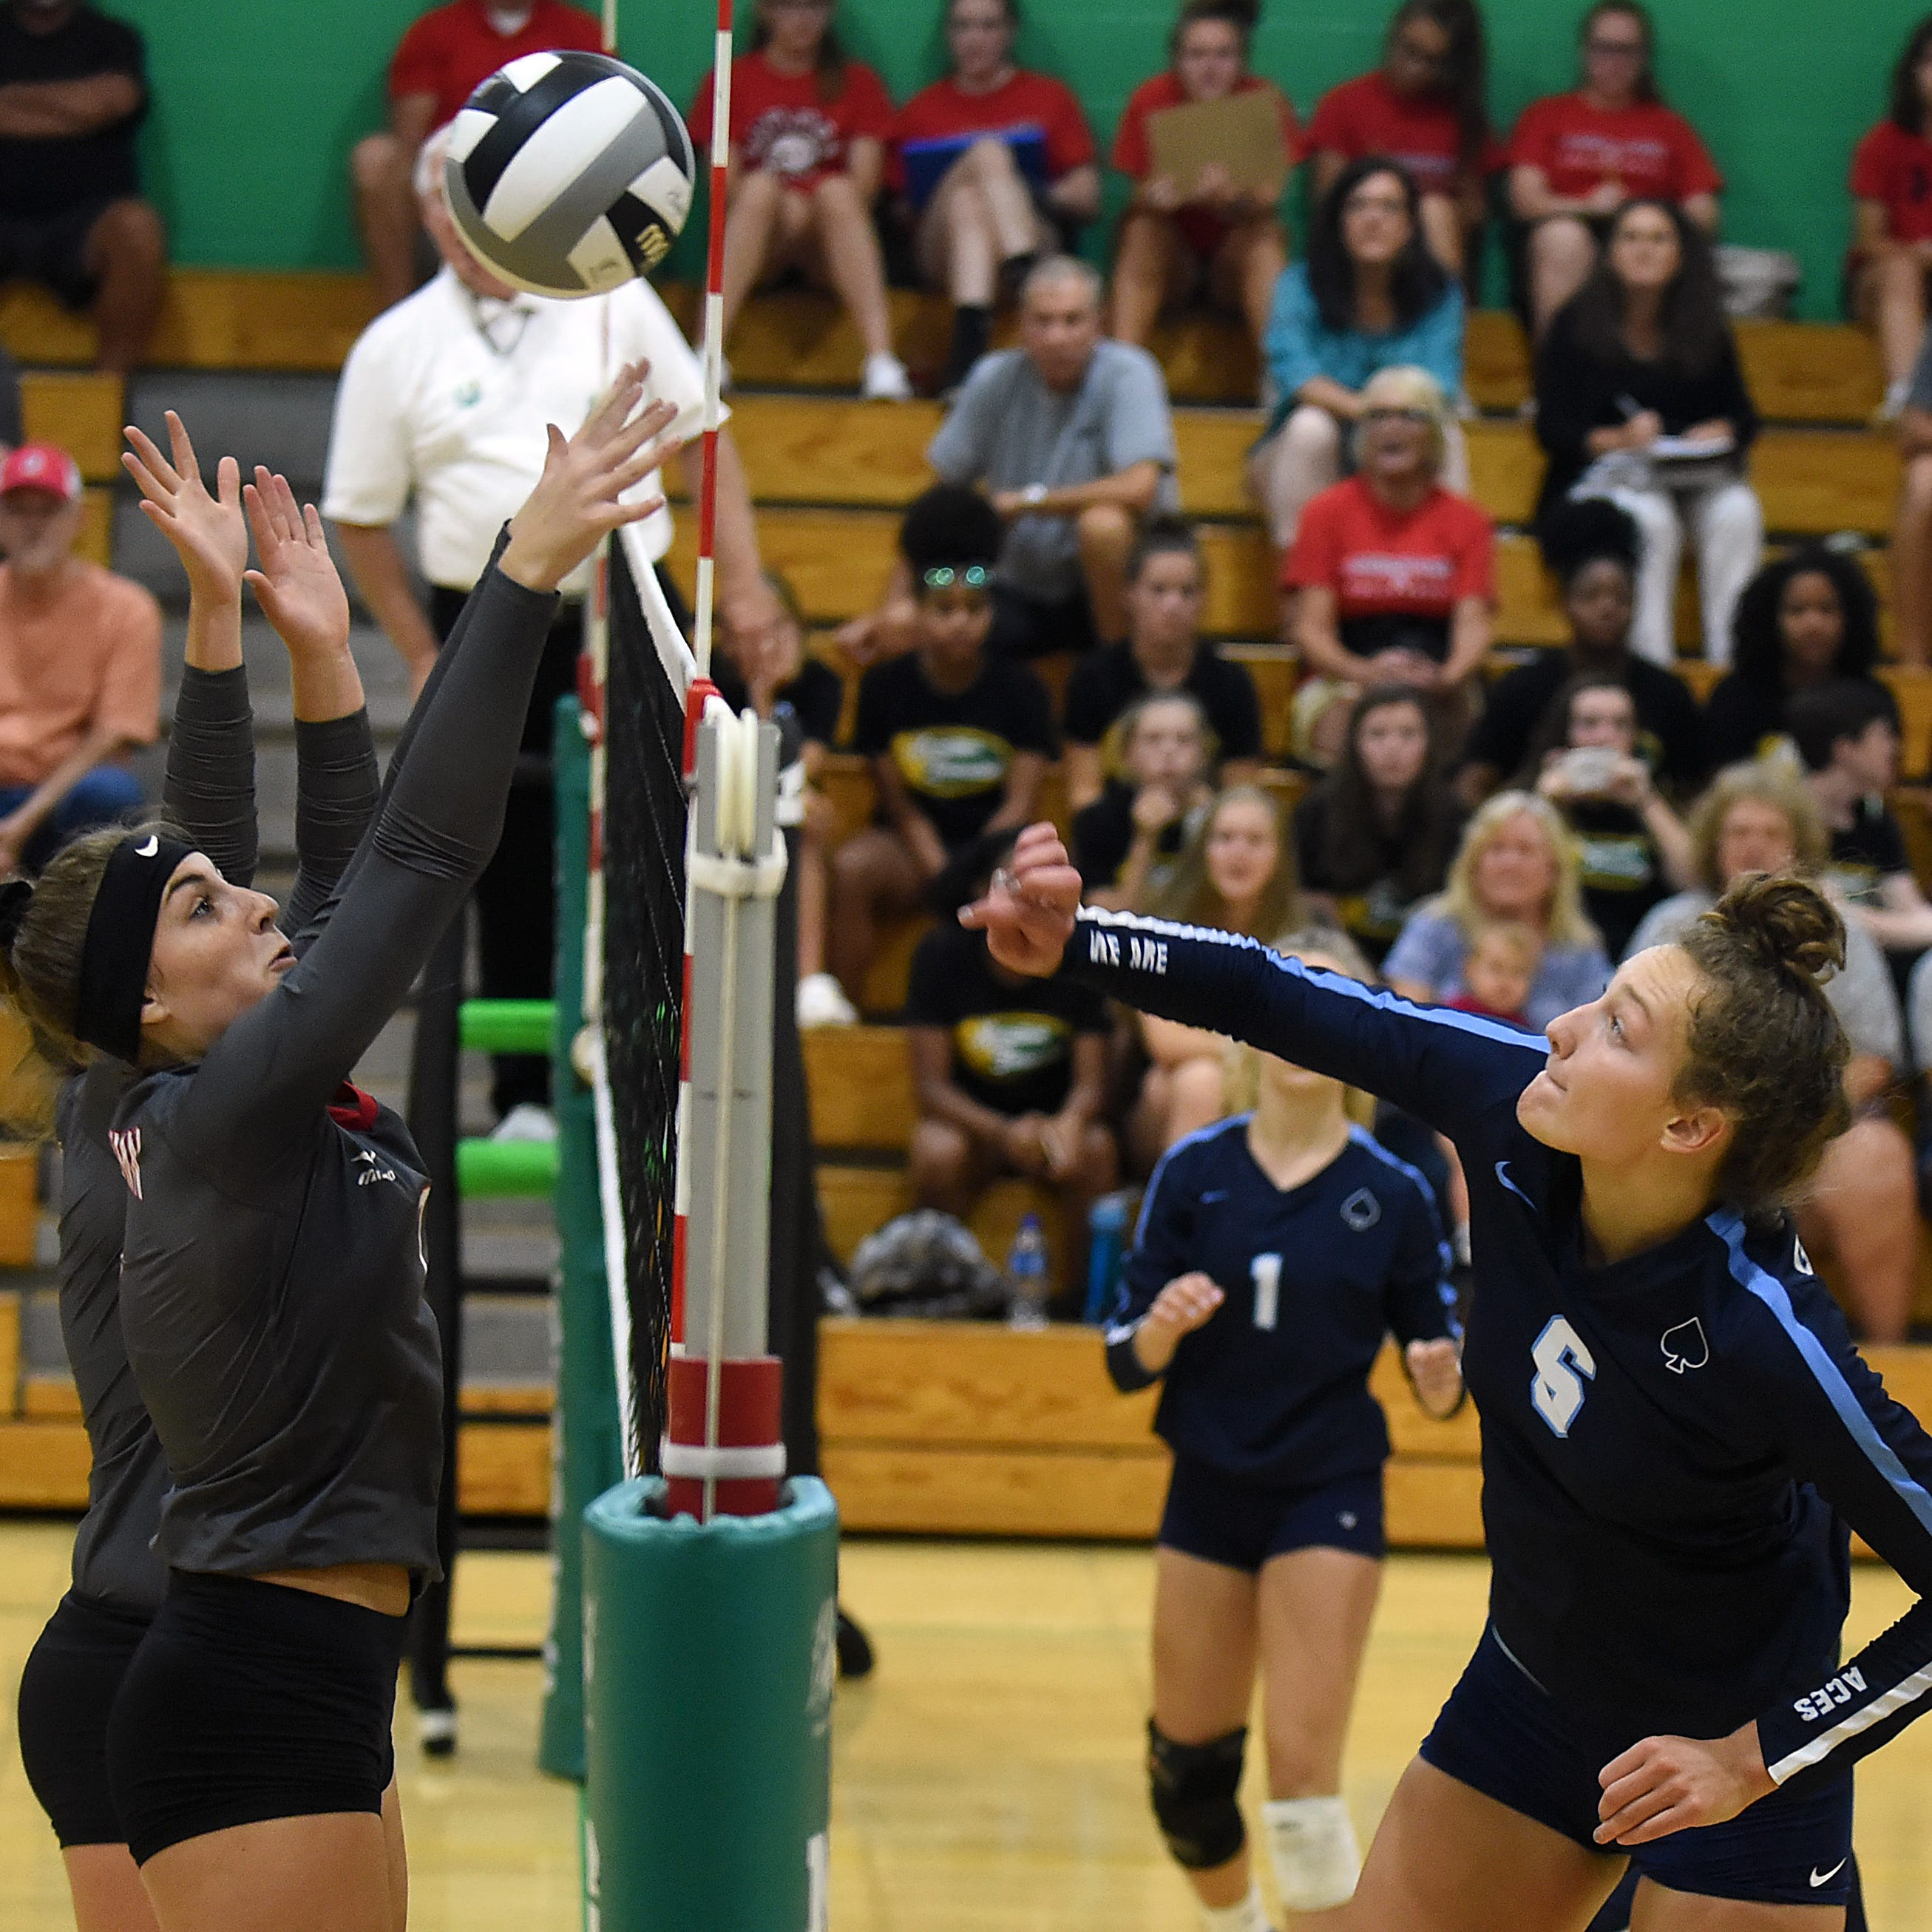 Licking County League volleyball teams attempting to knock Granville from top